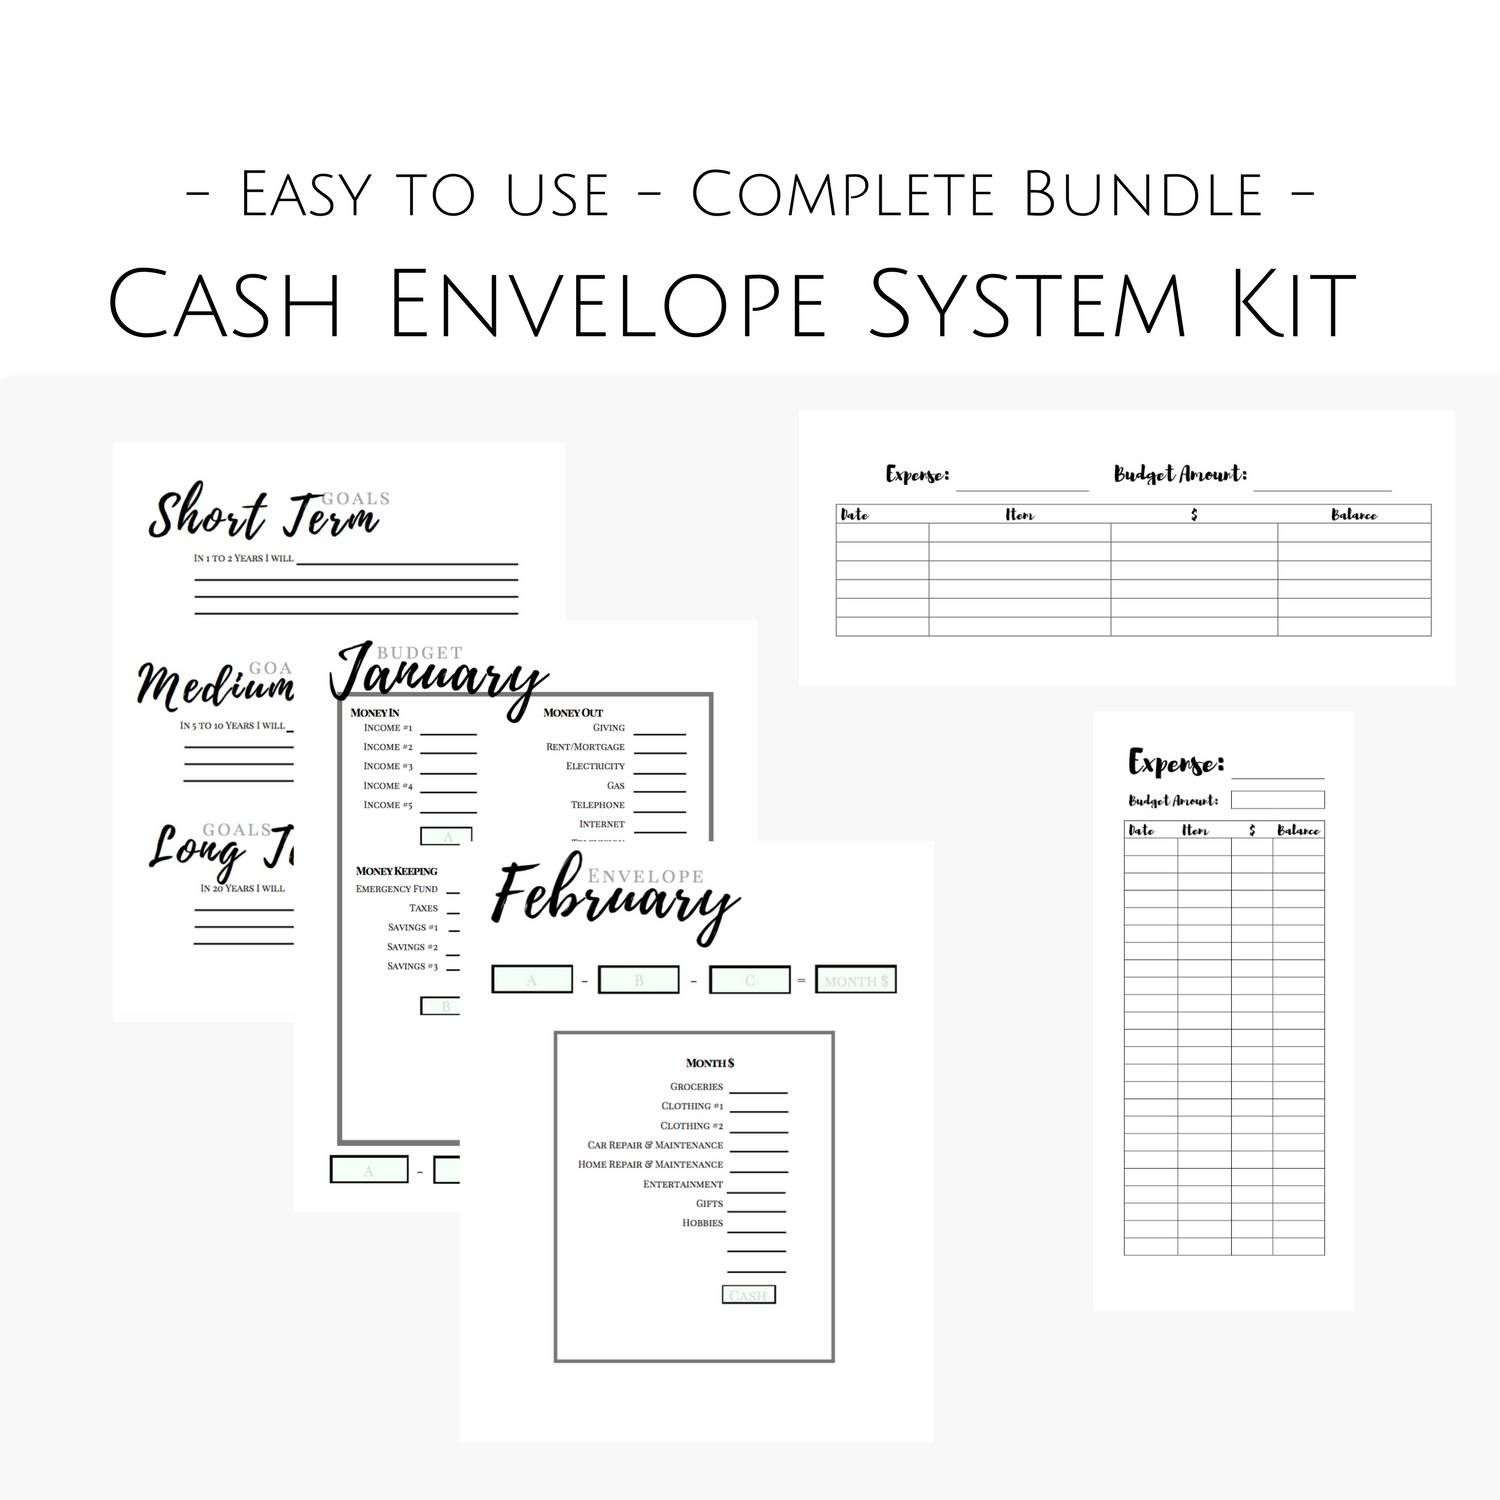 This Cash Envelope System And Finance Planner Download Is